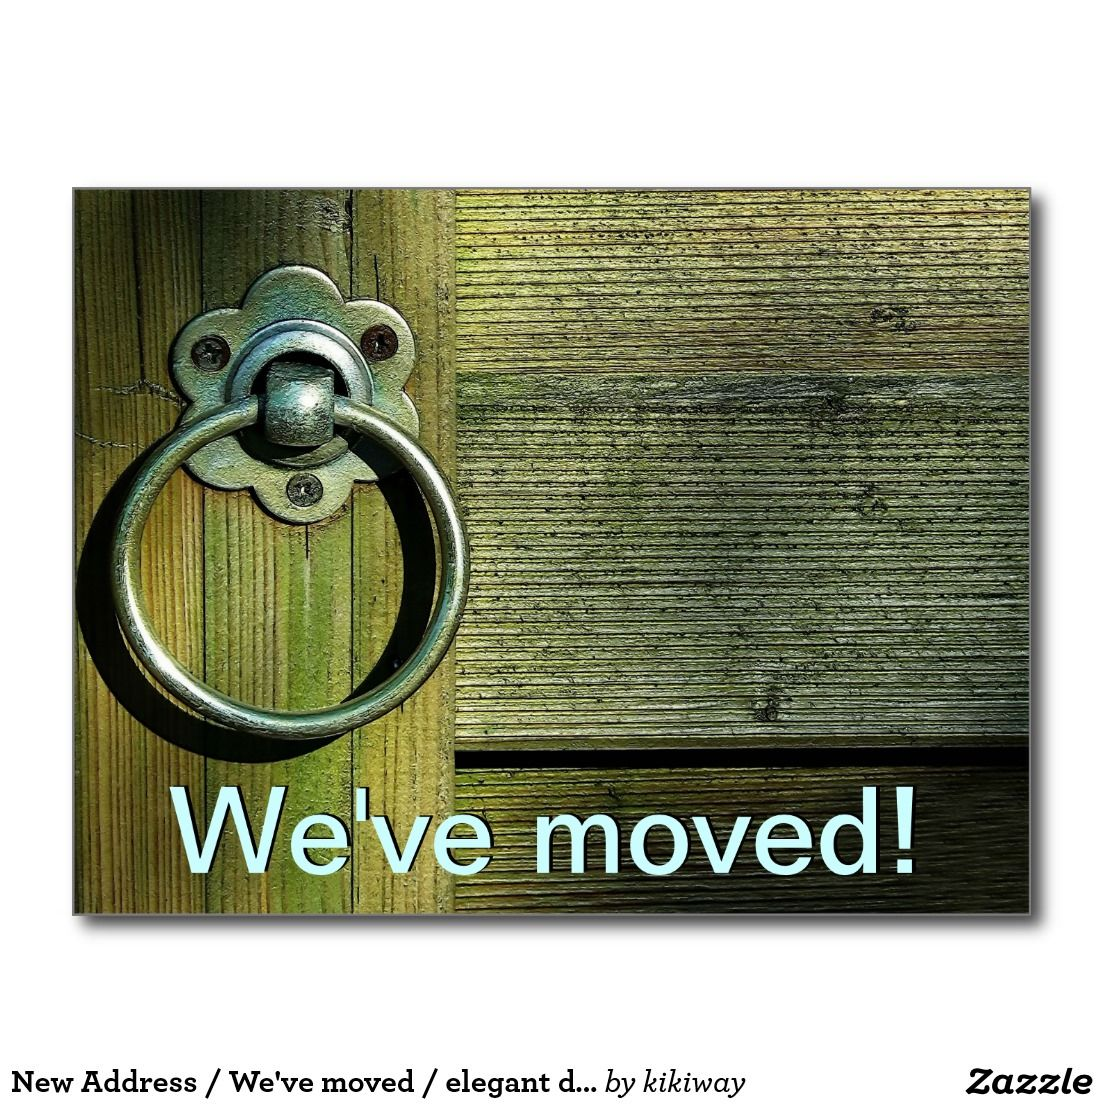 New Address / We've moved / elegant doorknob Postcard